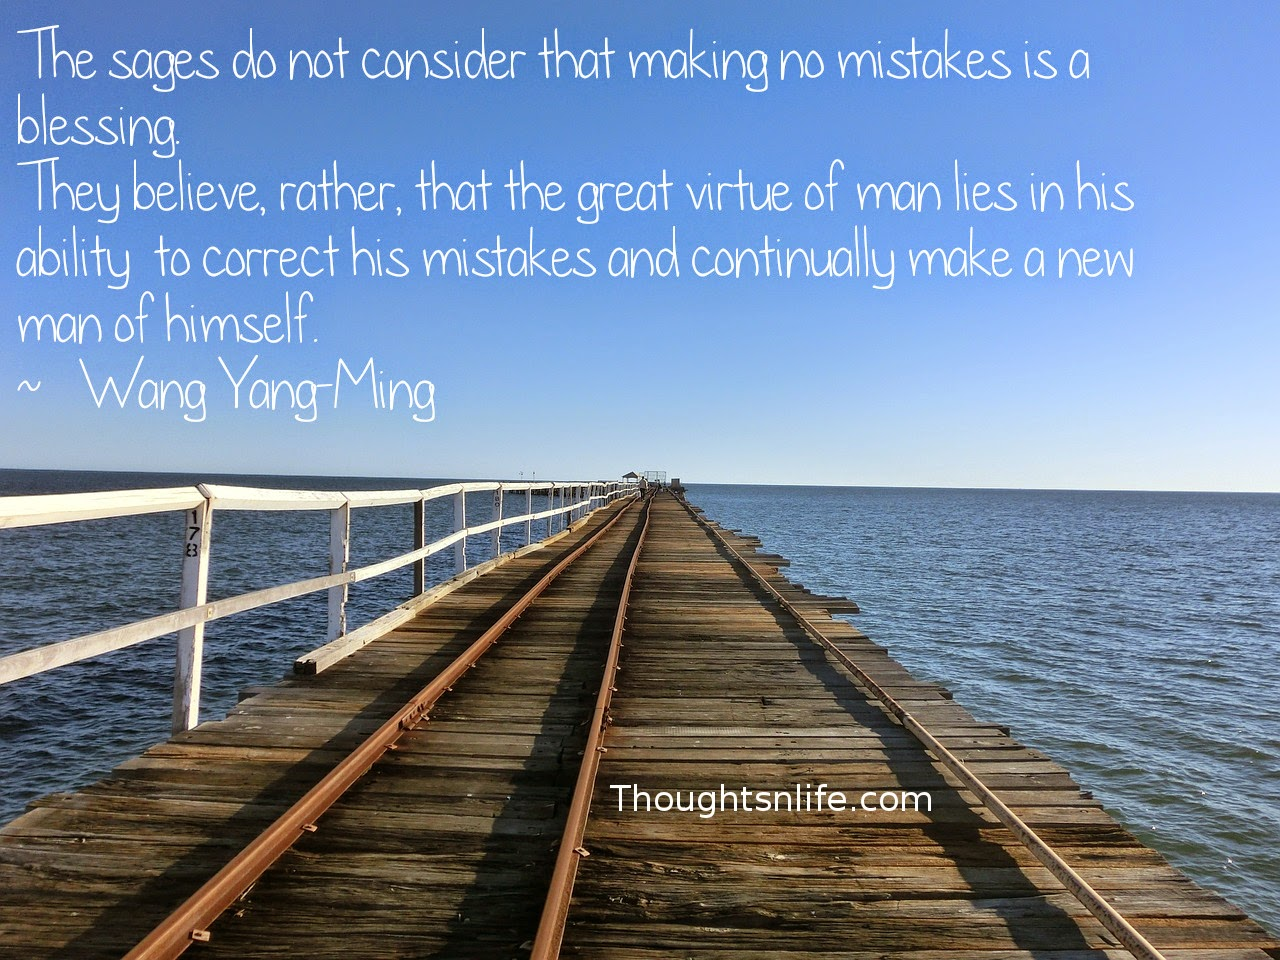 Thoughtsnlife.com: The sages do not consider that making no mistakes is a blessing.  They believe, rather, that the great virtue of man lies in his ability  to correct his mistakes and continually make a new man of himself.  ~   Wang Yang-Ming